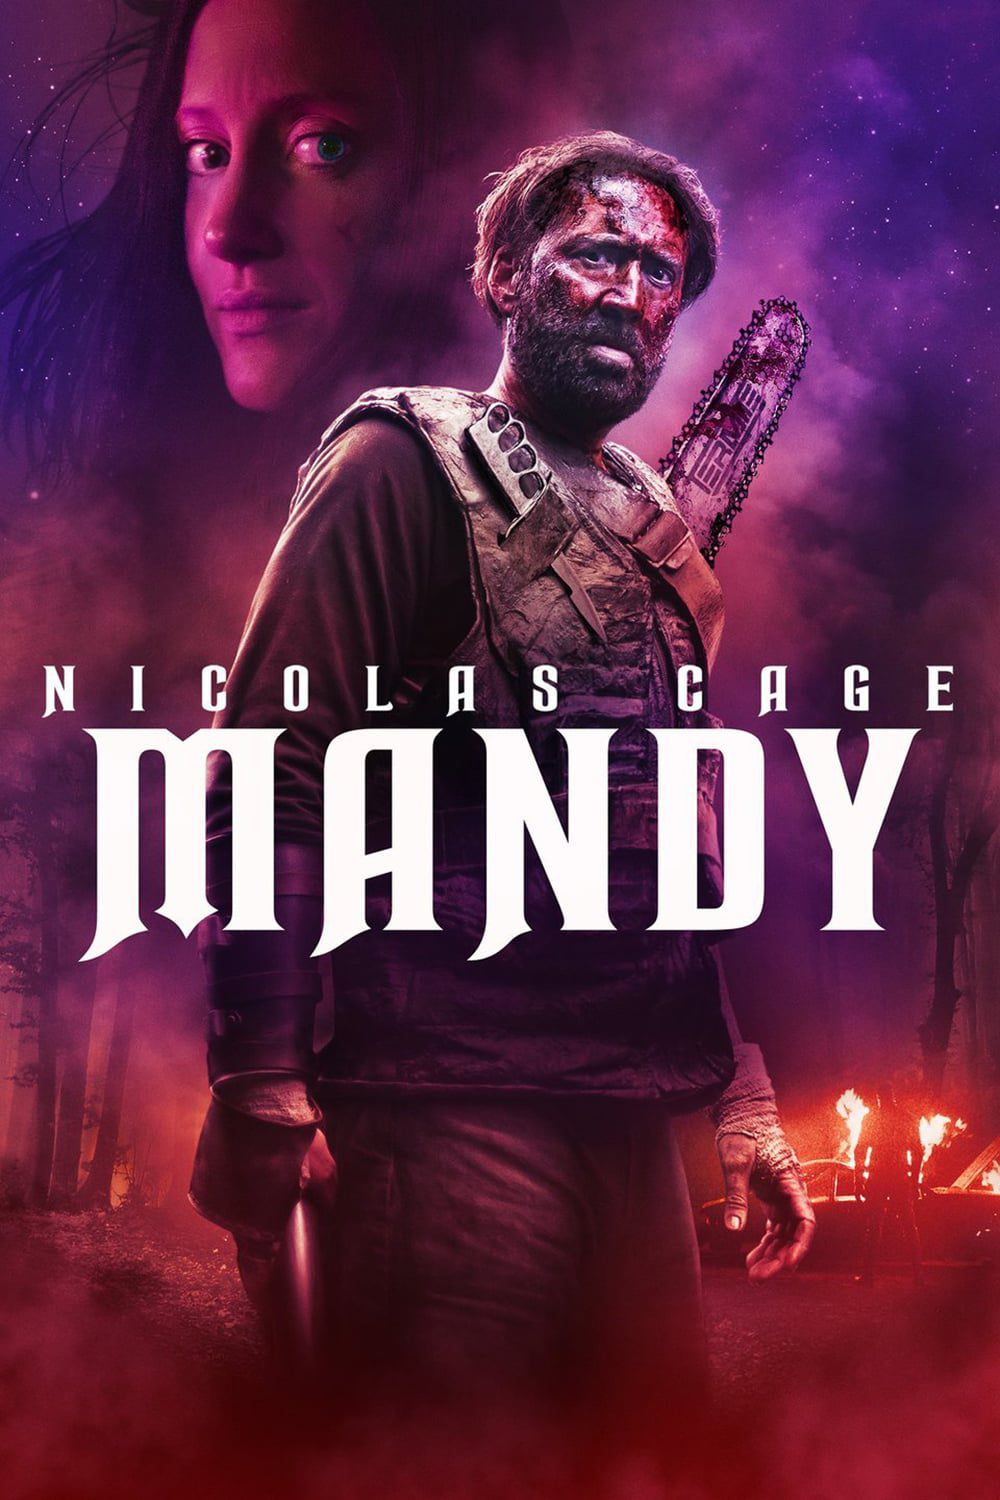 Mandy - Film (2018) streaming VF gratuit complet